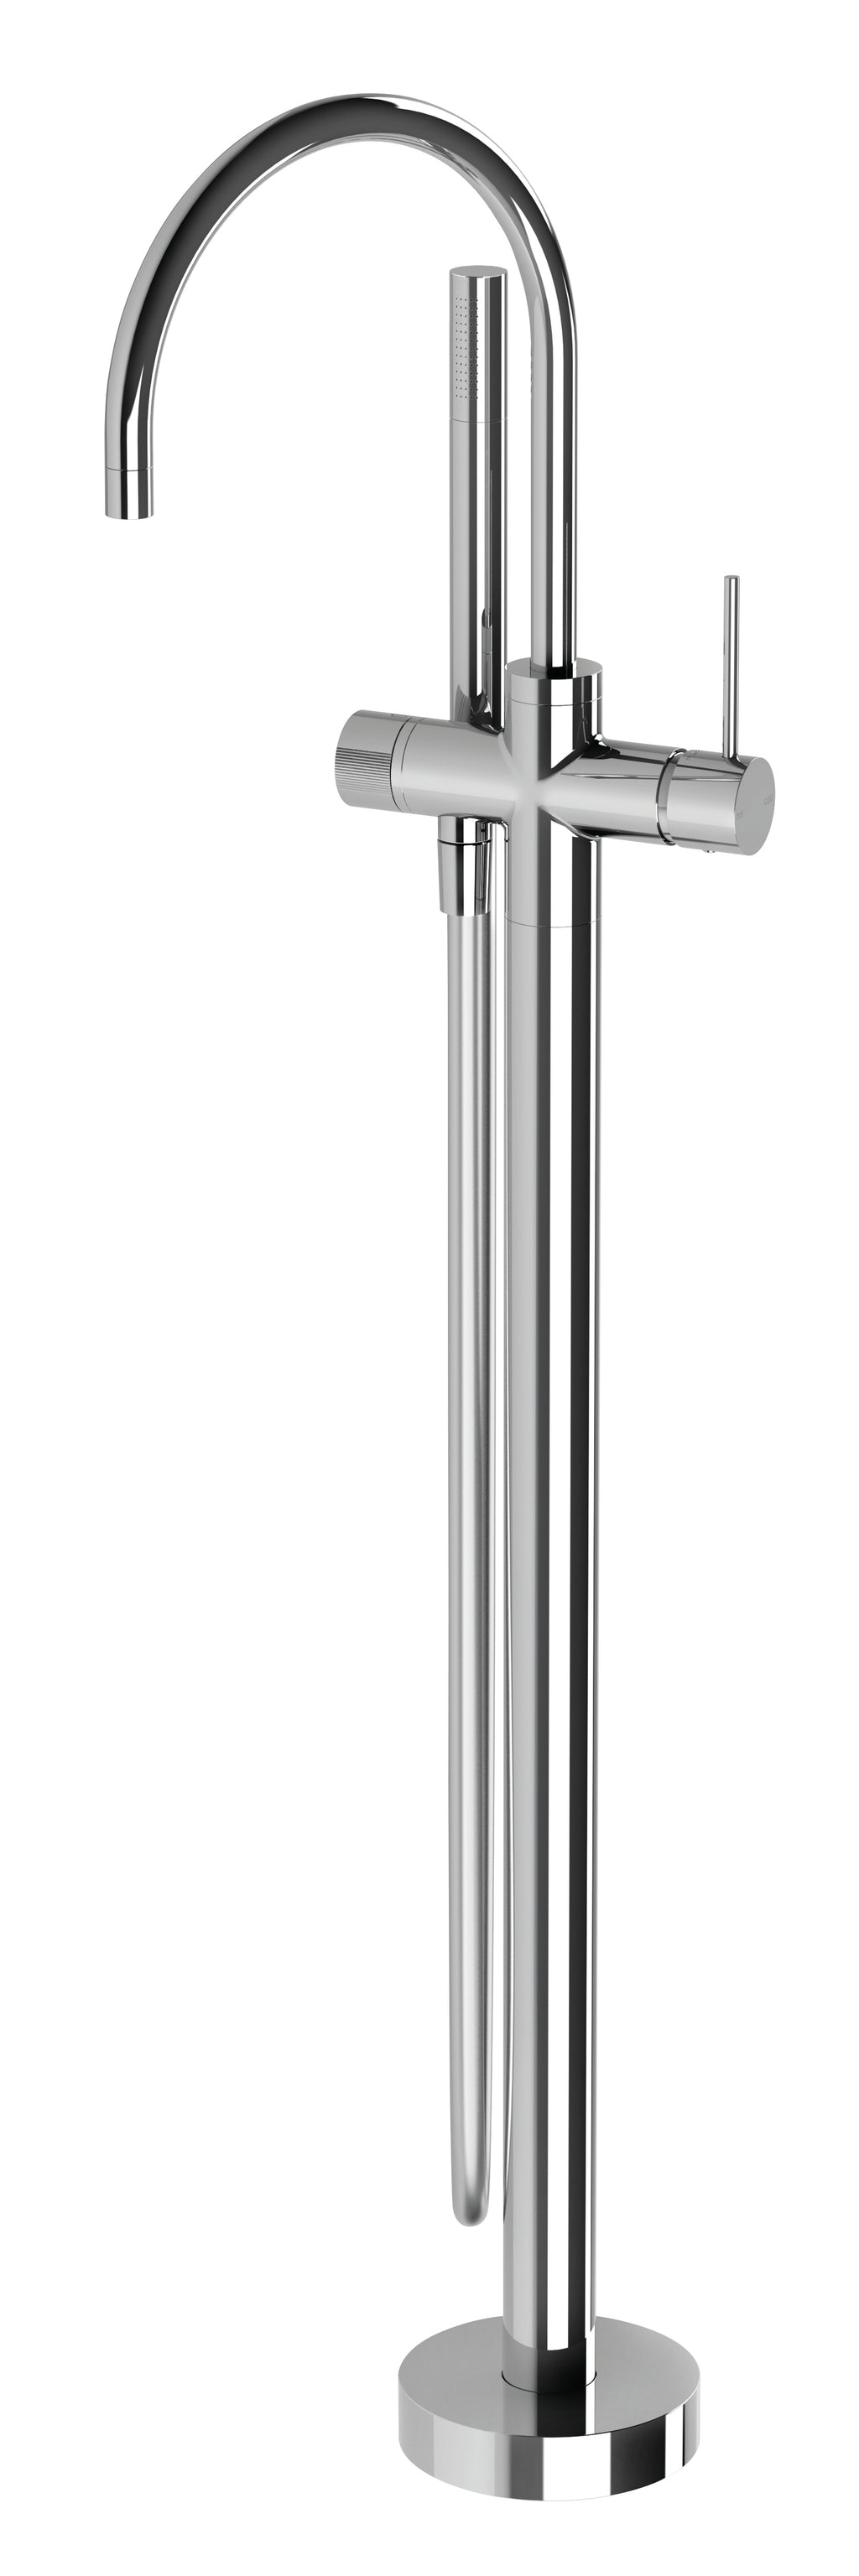 Vivid Slimline Floor Mounted Bath Mixer with Hand Shower (Chrome)